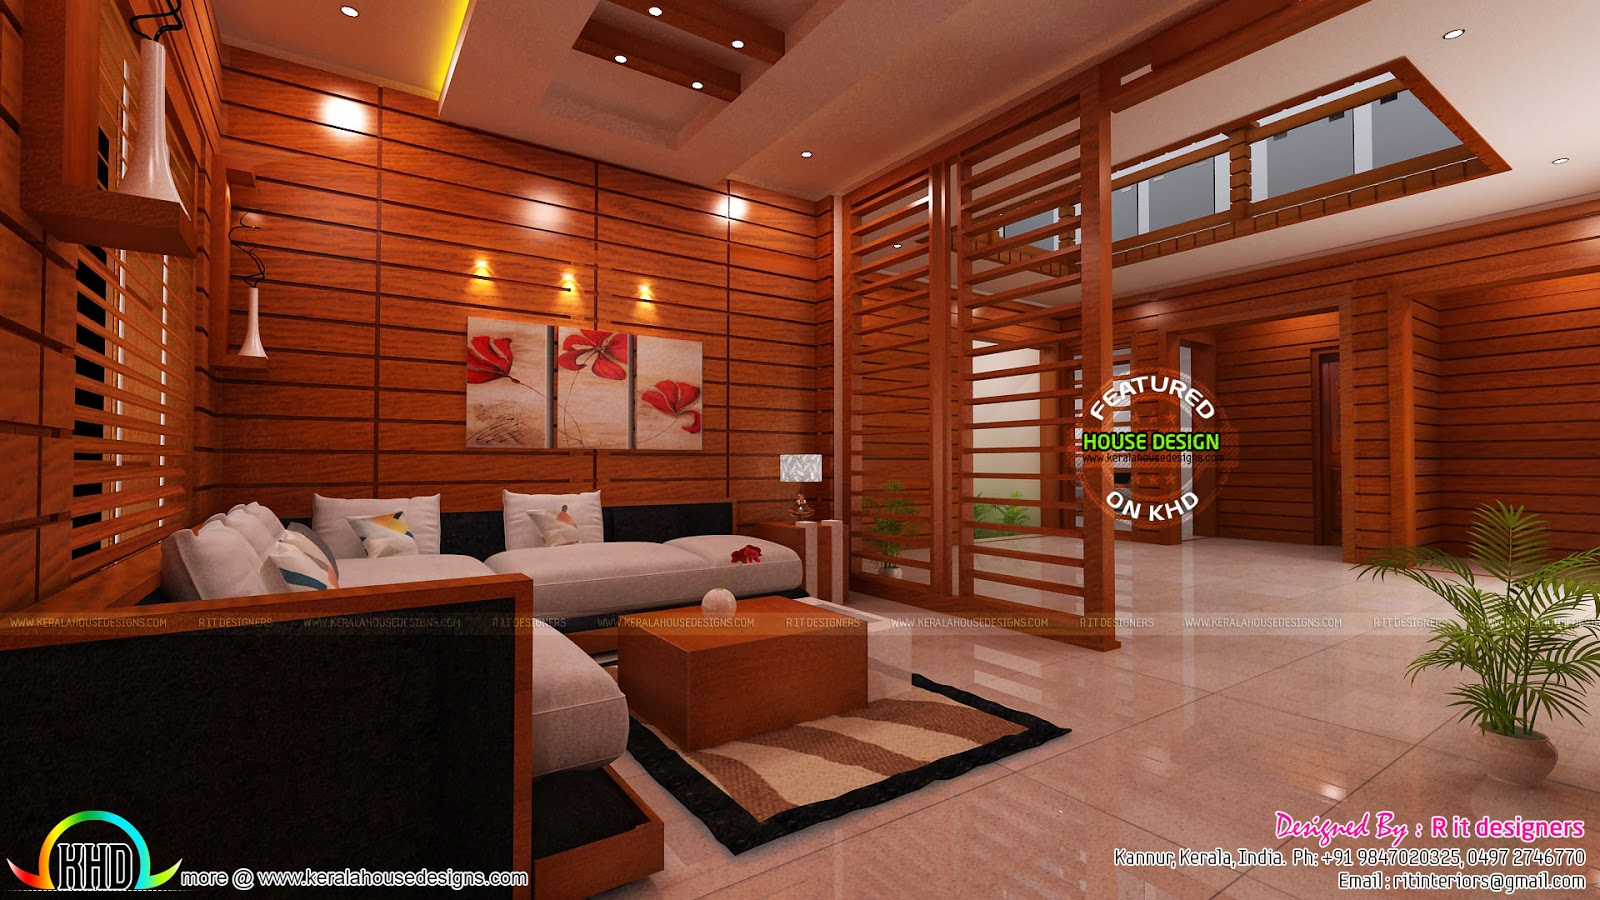 Modular kitchen living and bedroom interior kerala home for Kerala house living room interior design